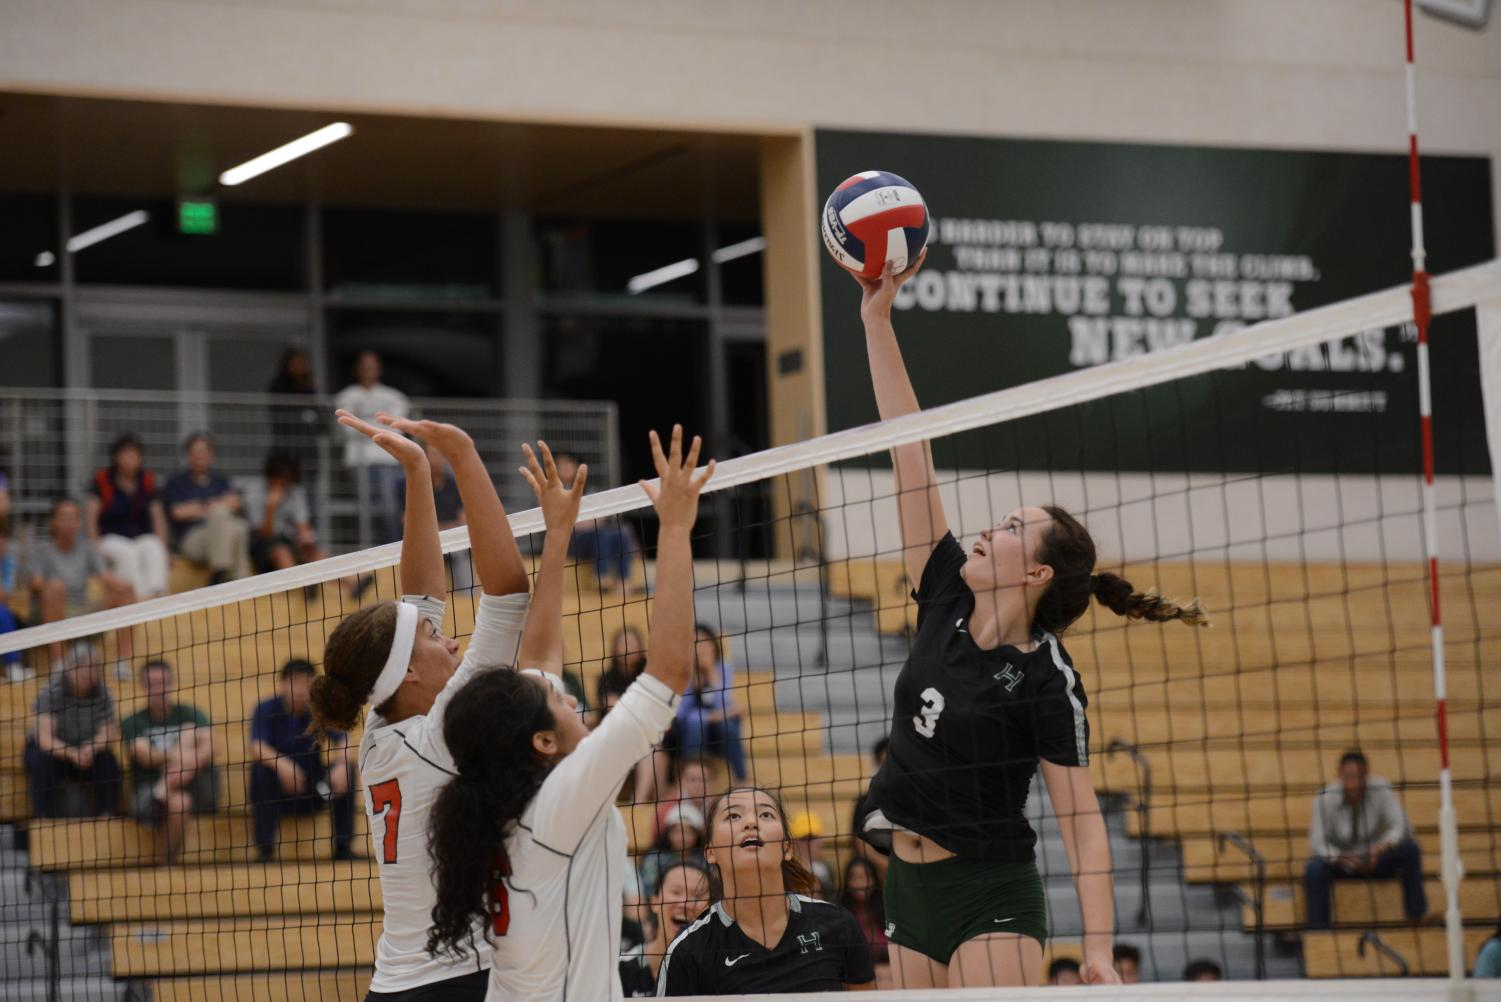 Lauren+Beede+%2812%29+jumps+up+to+tip+the+ball+over+the+Westmont+block.The+junior+varsity+team+also+competed+in+the+Spikefest+Tournament+at+Independence+High+School+on+Sept.+7%2C+defeating+Homestead%2C+Presentation+and+Menlo+before+losing+to+Notre-Dame+Belmont+in+the+semifinals+and+earning+third+place+overall.